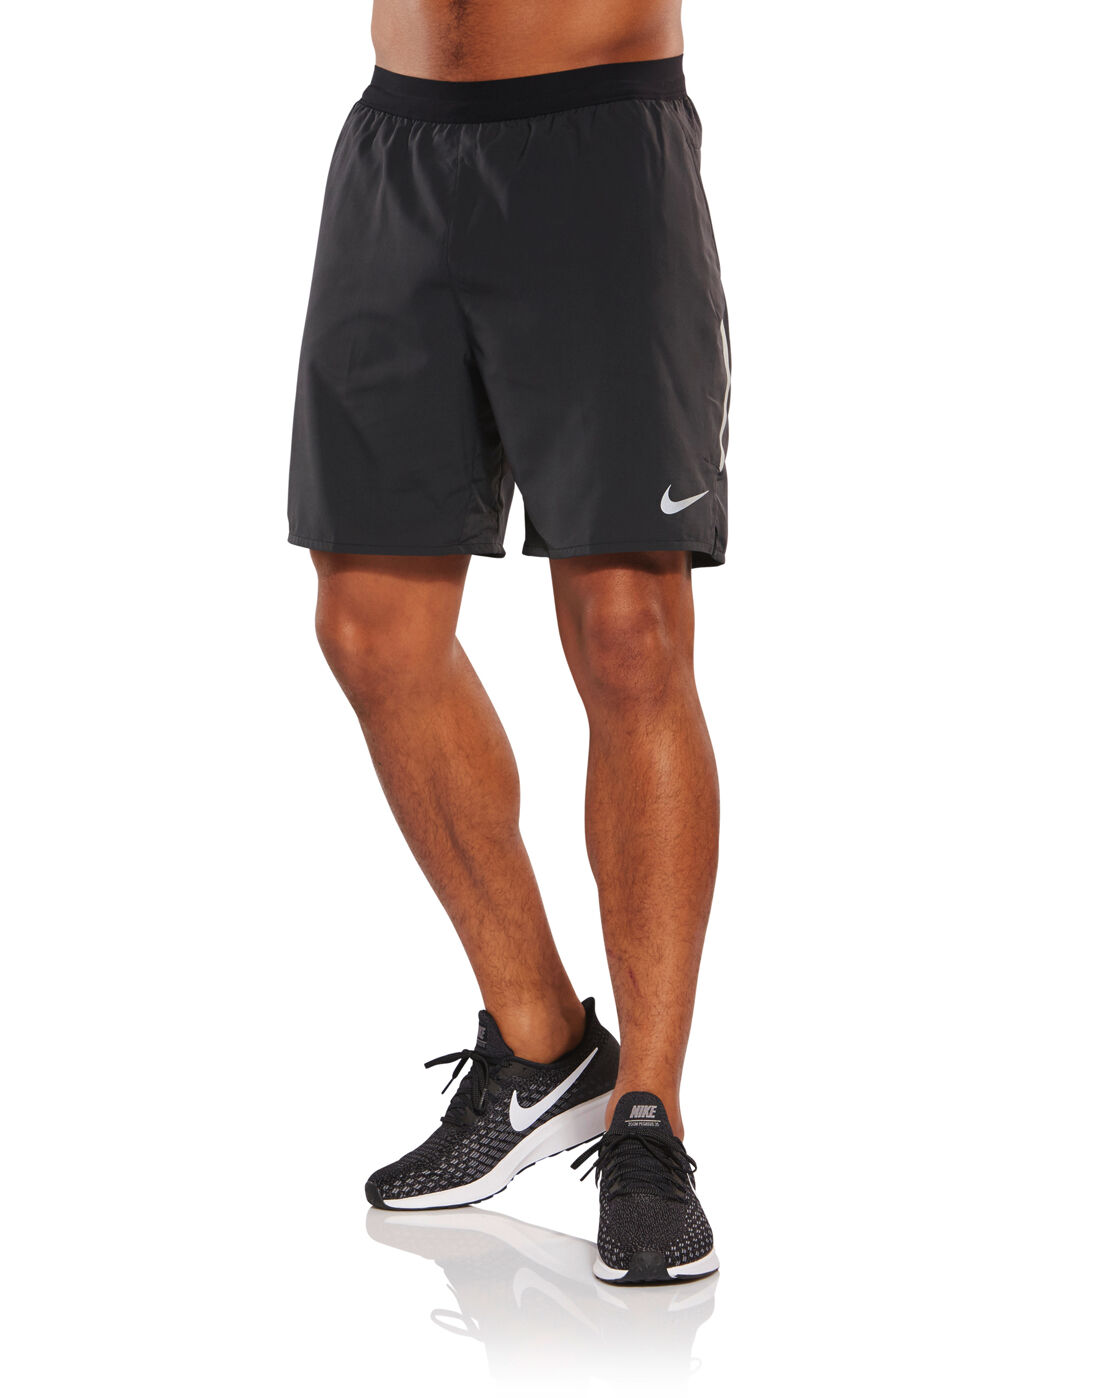 Men's amp; Life Style Shorts Running Fitness TrvCqw5T